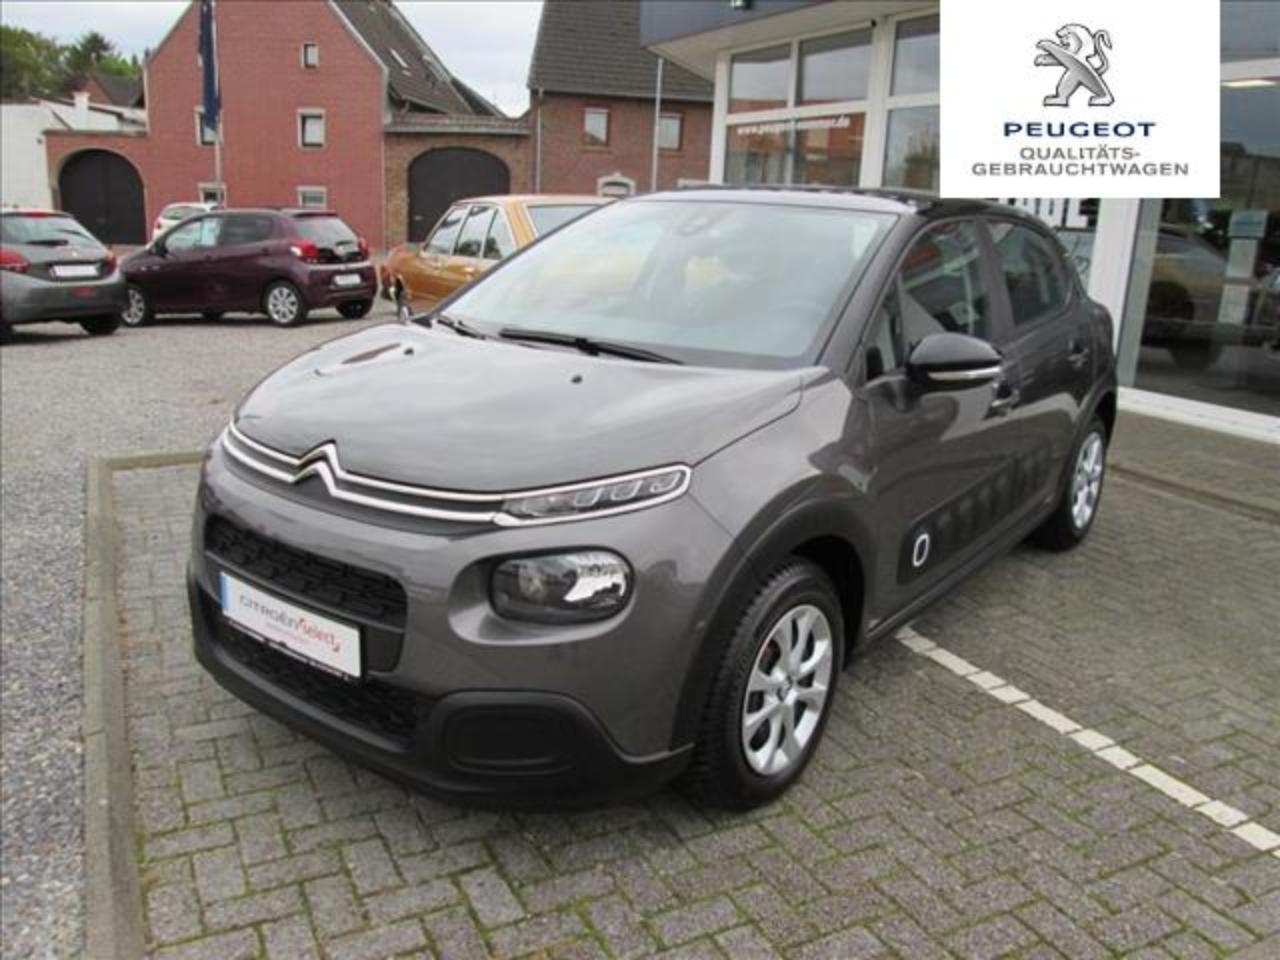 Citroën C3 1.2 P.Tech 82 FeelS&S(EU-6d-TEMP)SHZ,PDC